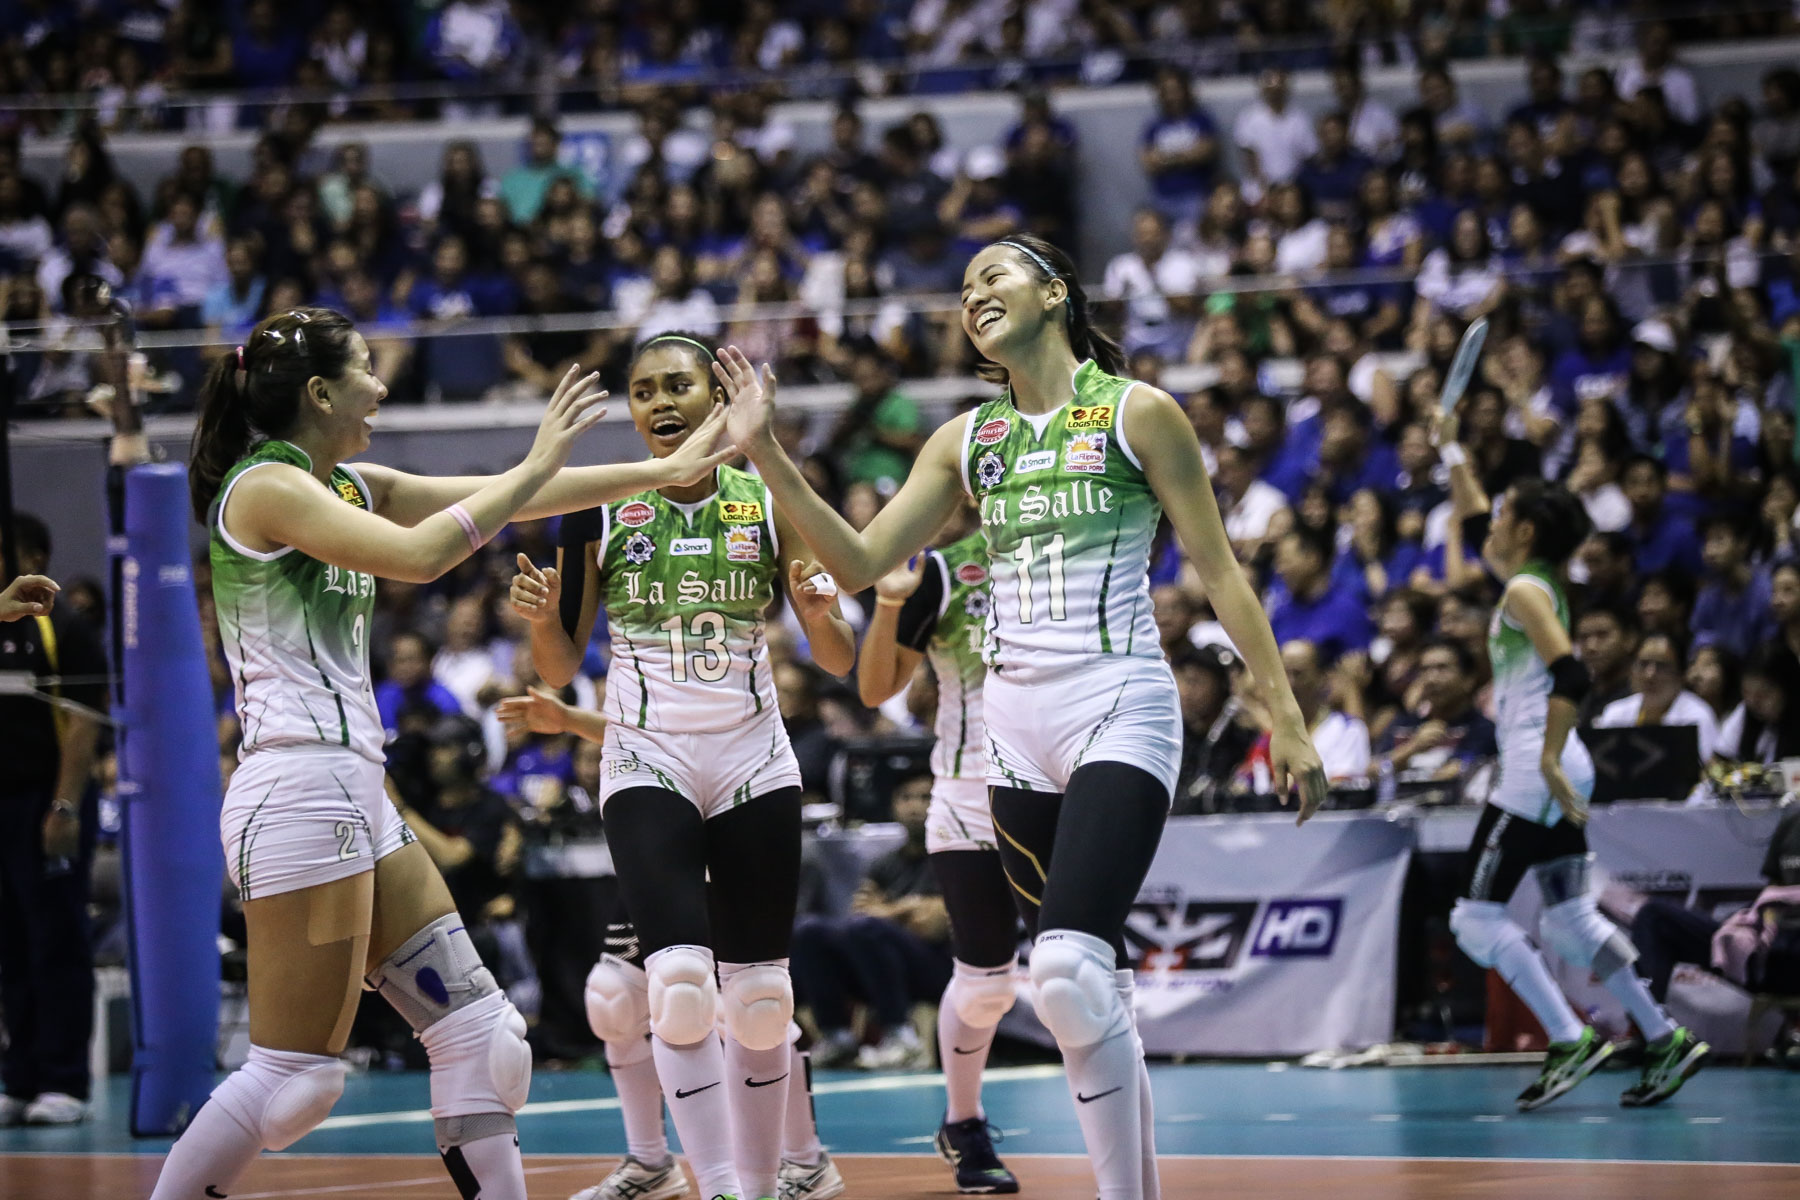 BACK-TO-BACK. The De La Salle Lady Spikers win the UAAP Season 79 women's volleyball title after sweeping the Ateneo Lady Eagles. Photo by Josh Albelda/Rappler